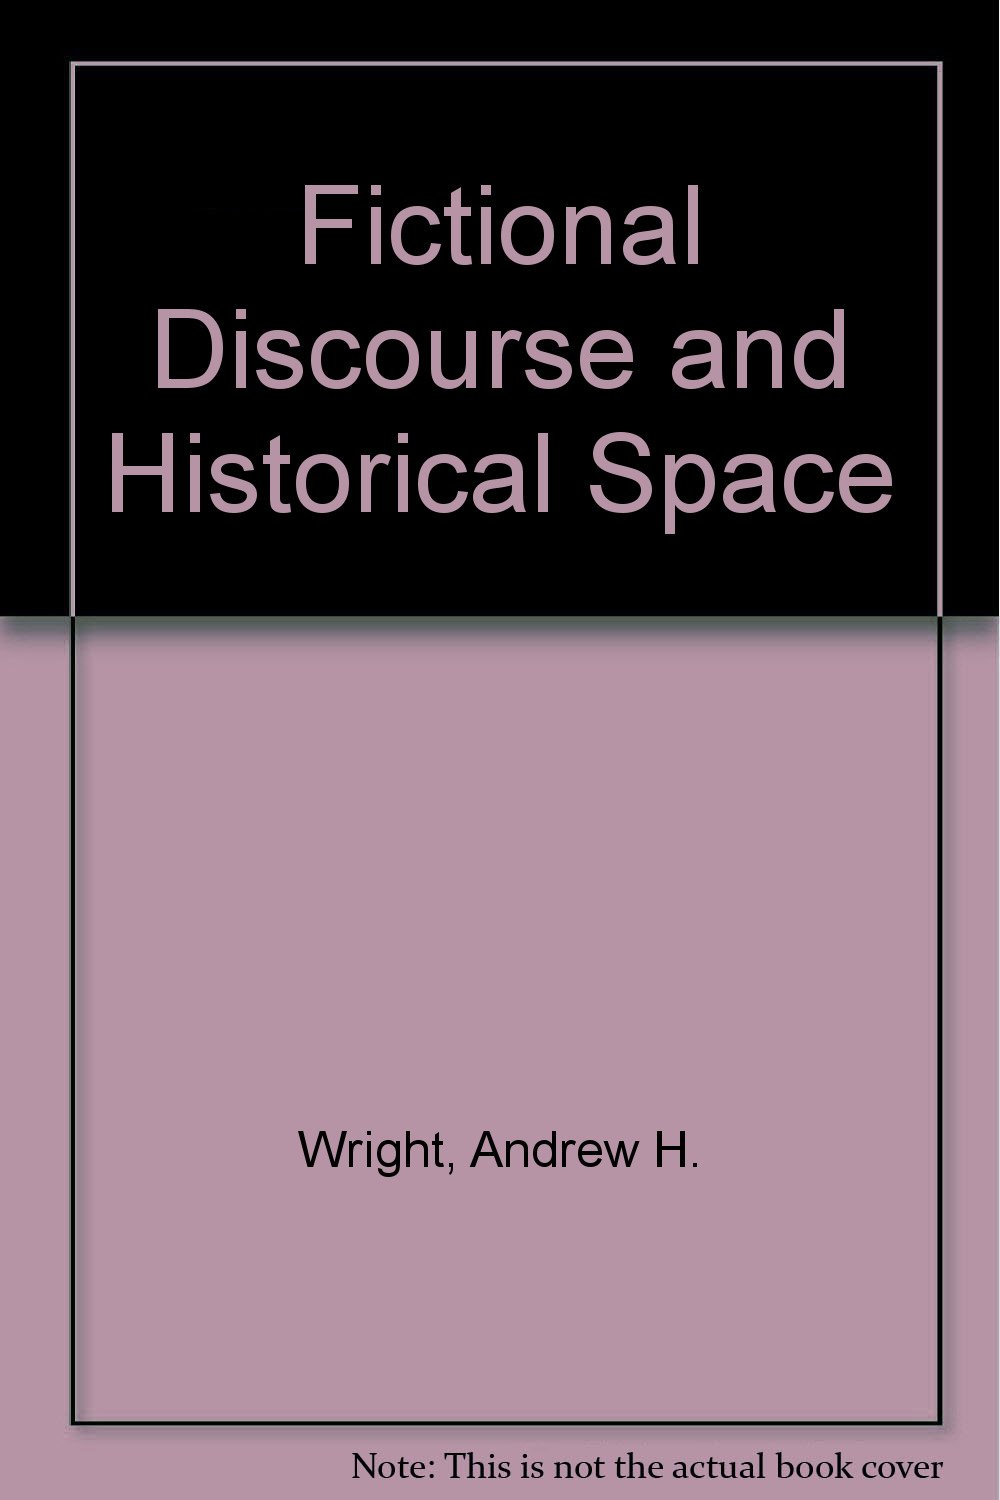 Fictional Discourse and Historical Space